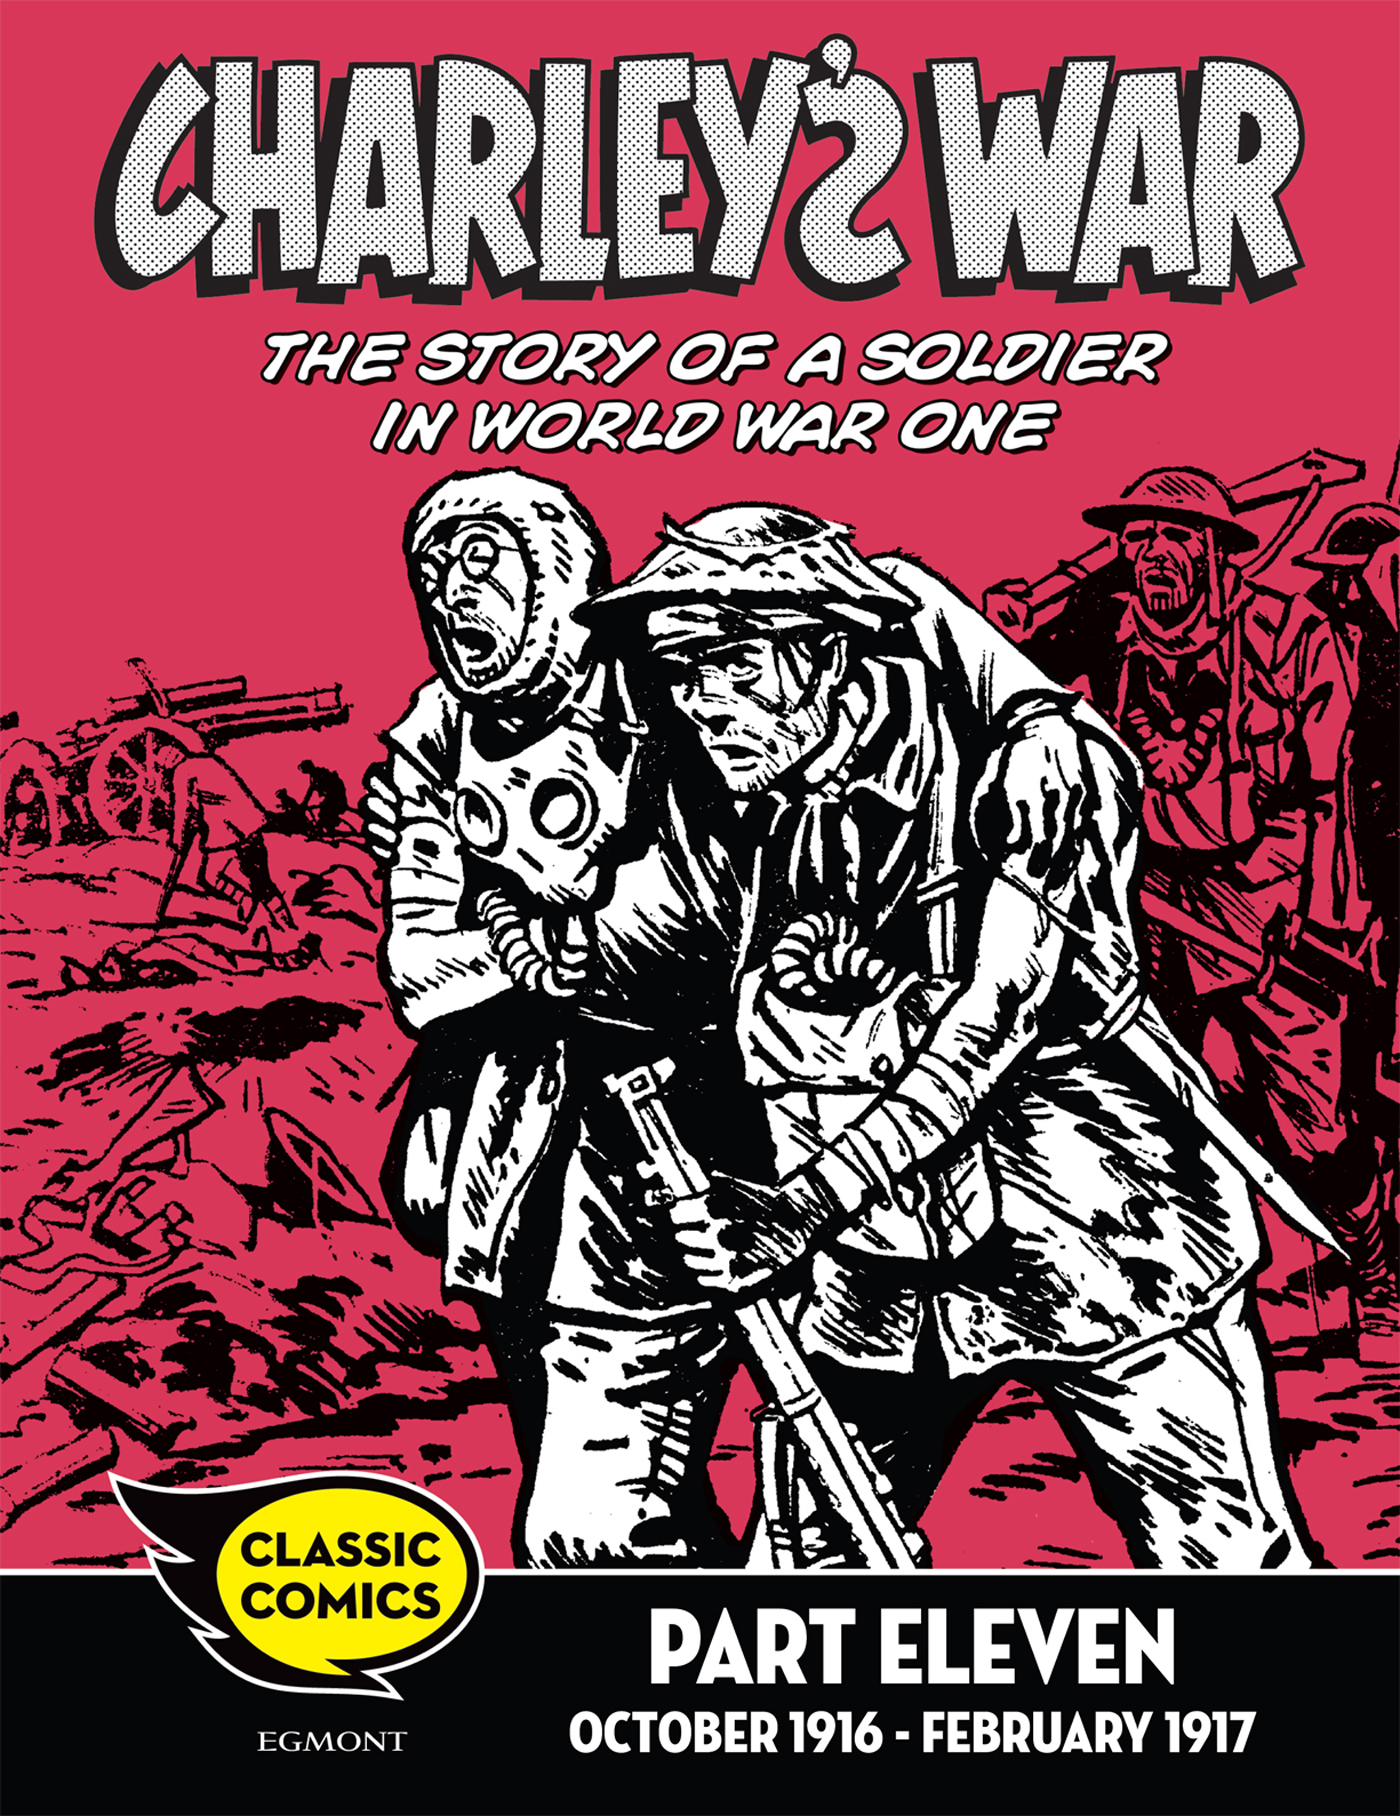 Charley's War Comic Part Eleven: October 1916 - February 1917